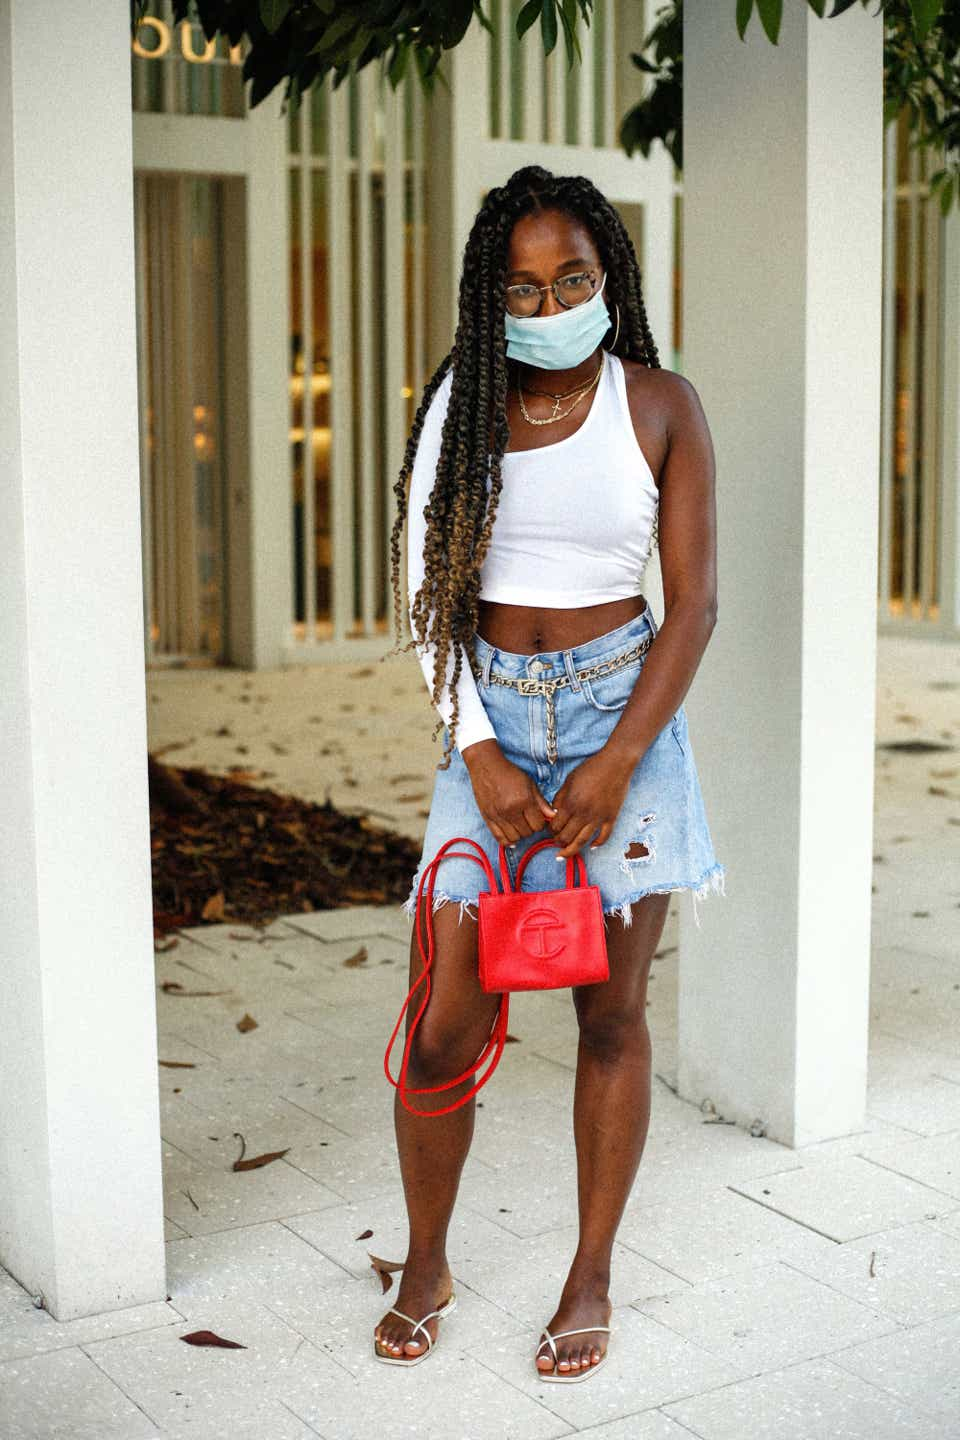 Kristi is wearing a white tank top with asymmetric sleeves, a denim mini skirt paired with a gold chain belt, and gold sandals. She paired the look with a surgical mask and a red Telfar mini bag.